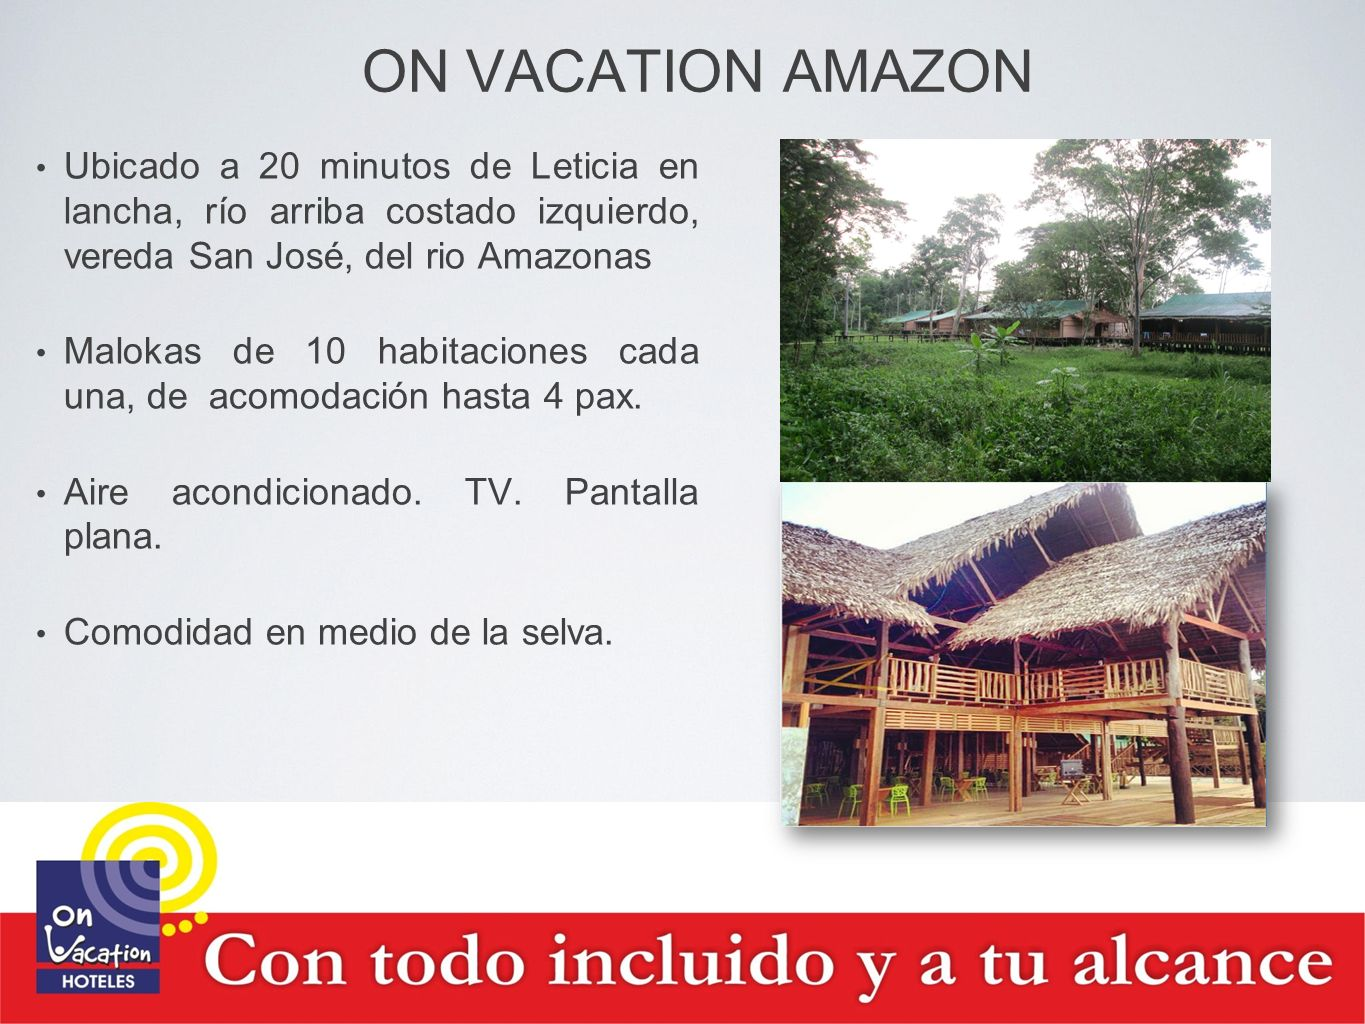 ON VACATION AMAZON Ubicado a 20 minutos de Leticia en lancha, río arriba costado izquierdo, vereda San José, del rio Amazonas.